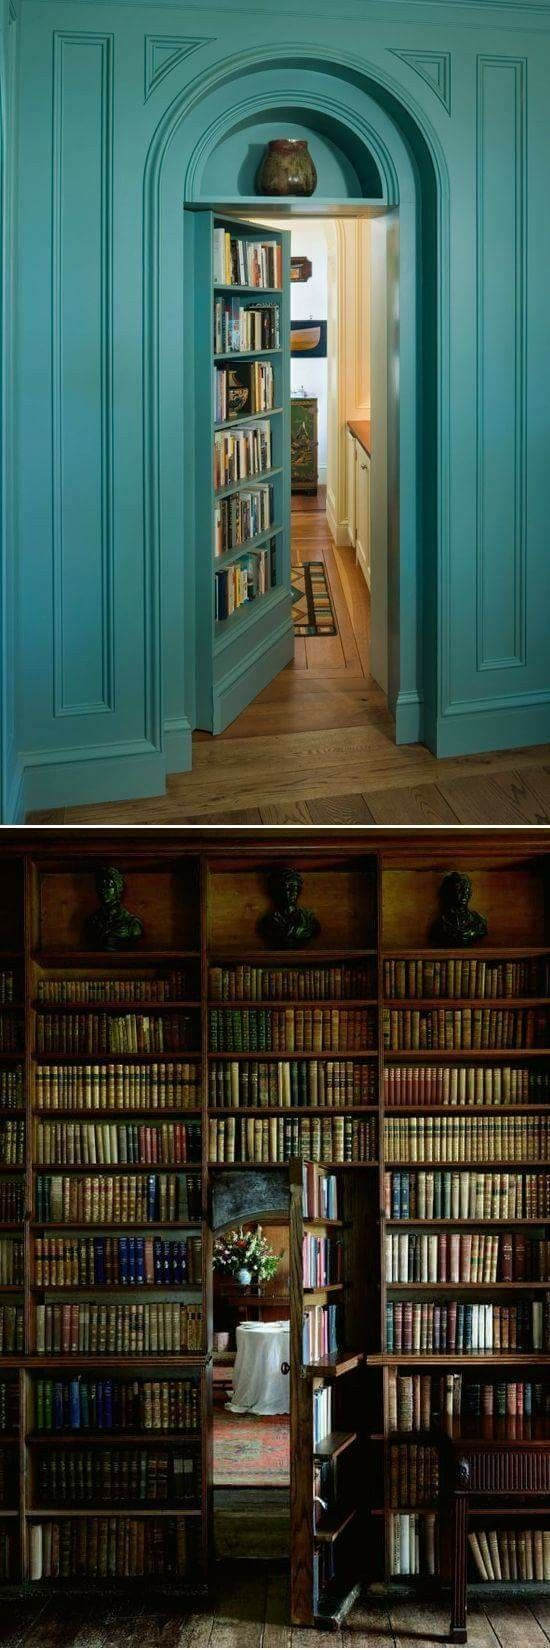 Such a cool idea to integrate bookshelves in the door